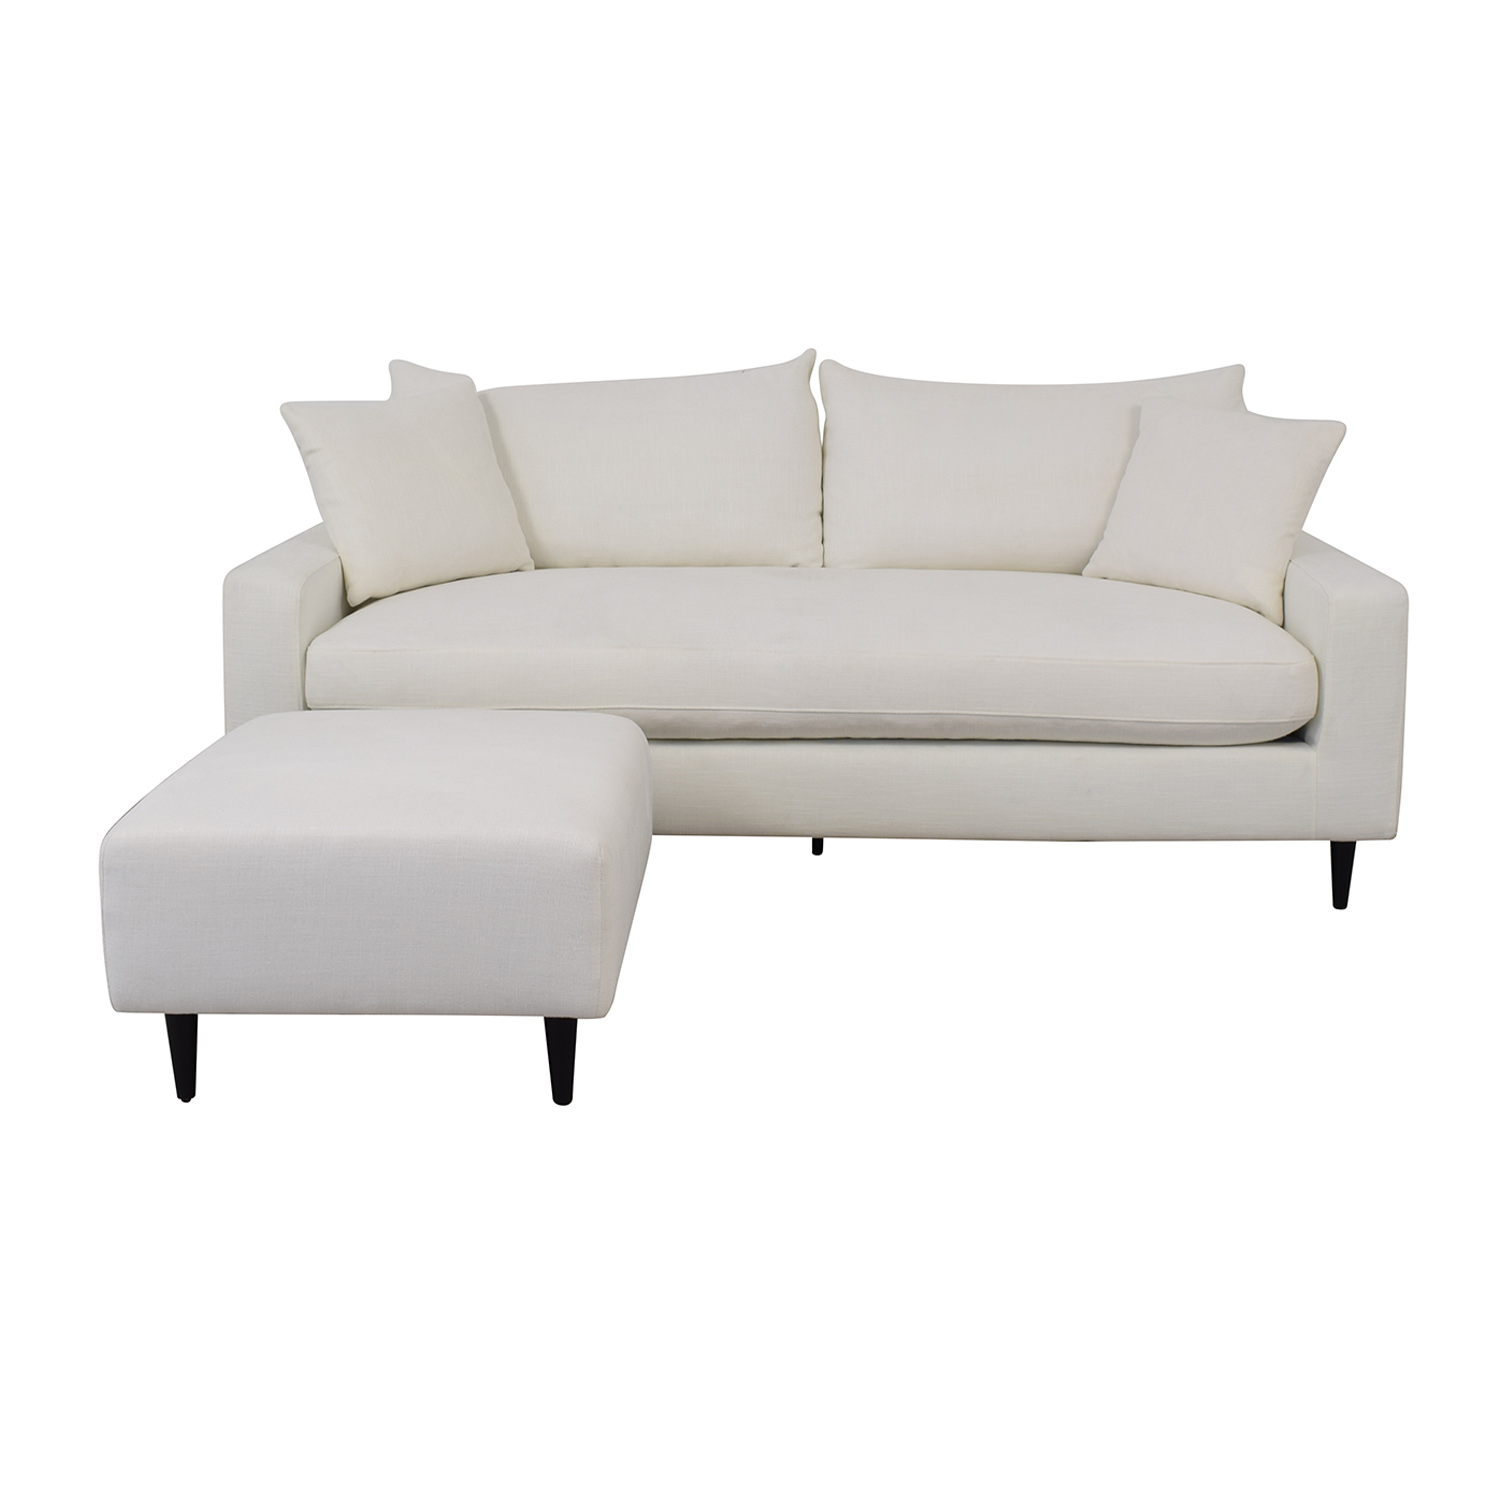 Sloan Sofa and Tegan Ottoman / Classic Sofas